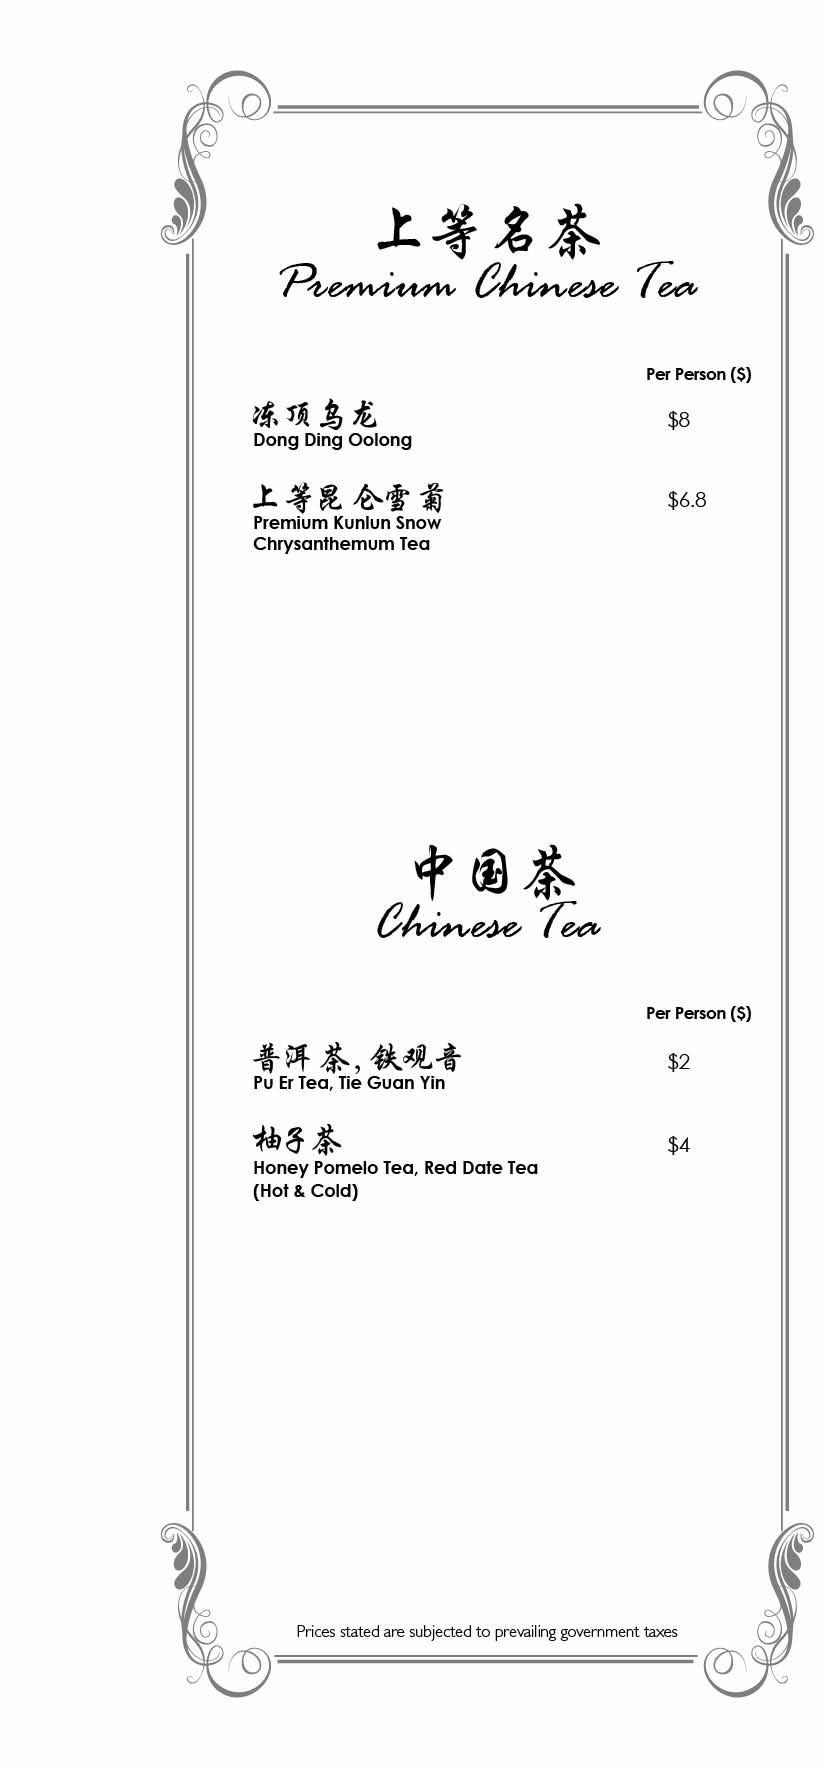 AP16_Jia_Beverage Menu57.jpg